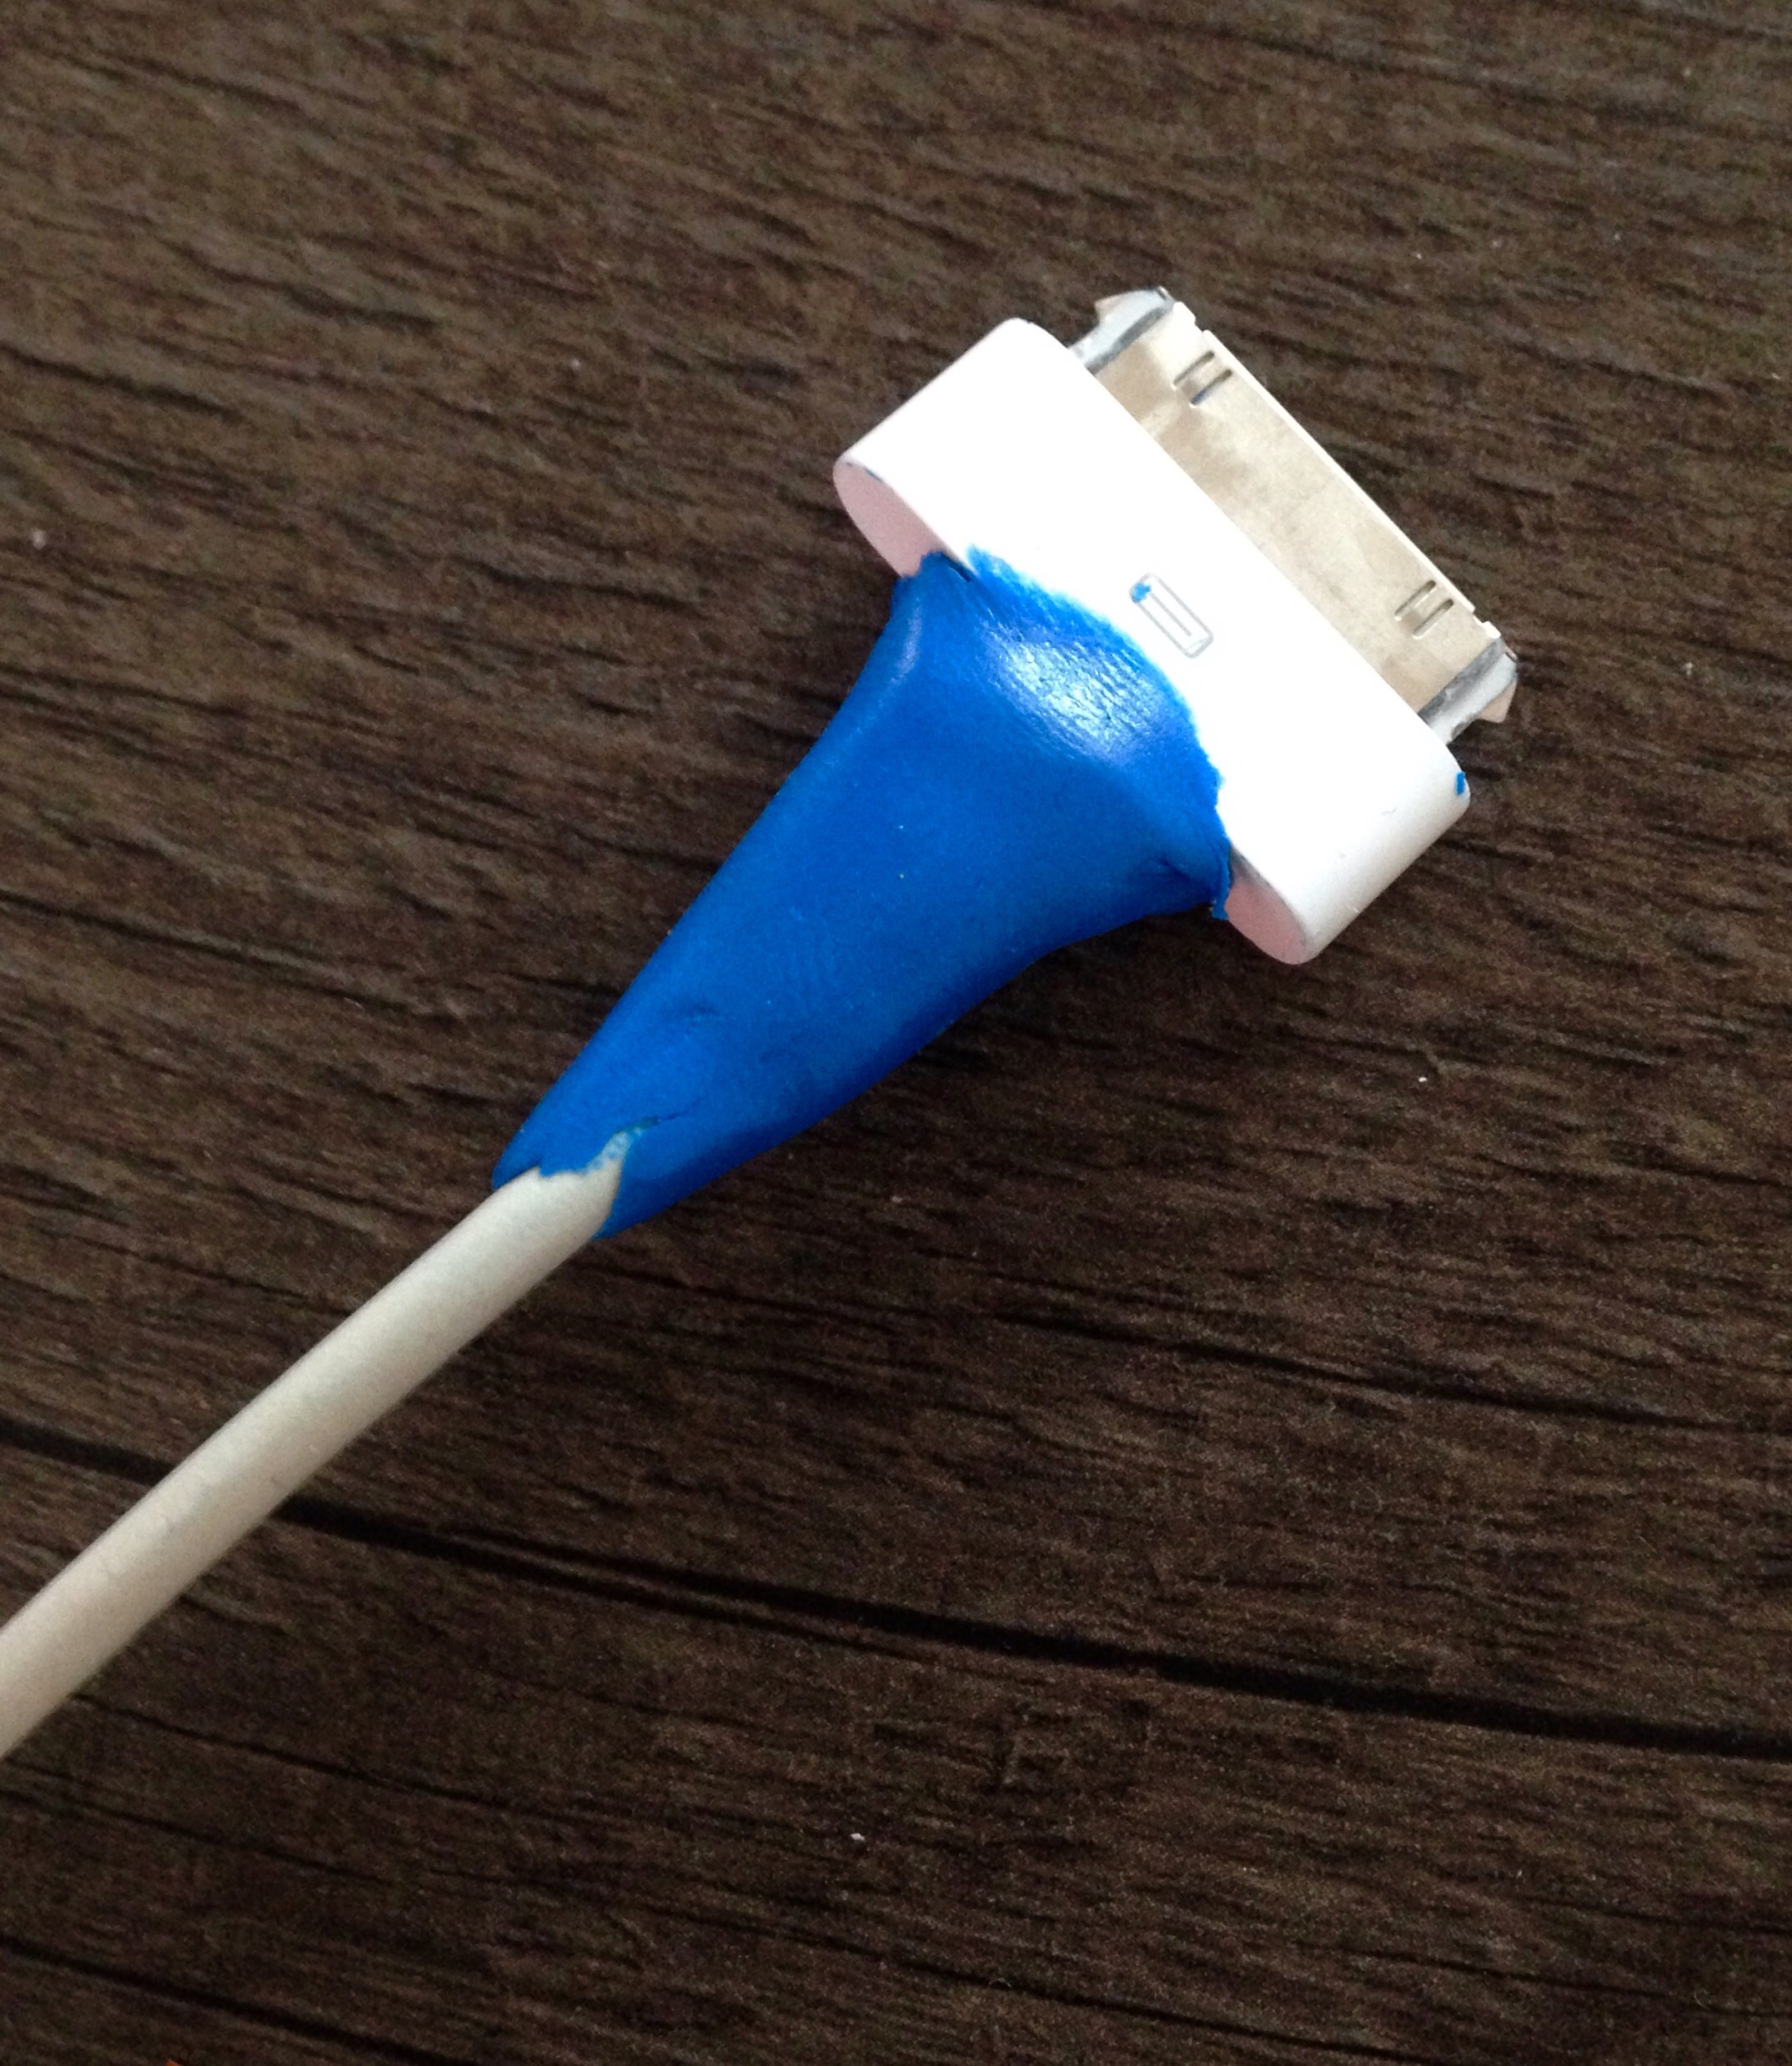 With a 2 year old about, the iPad cable needs a bit of strengthening